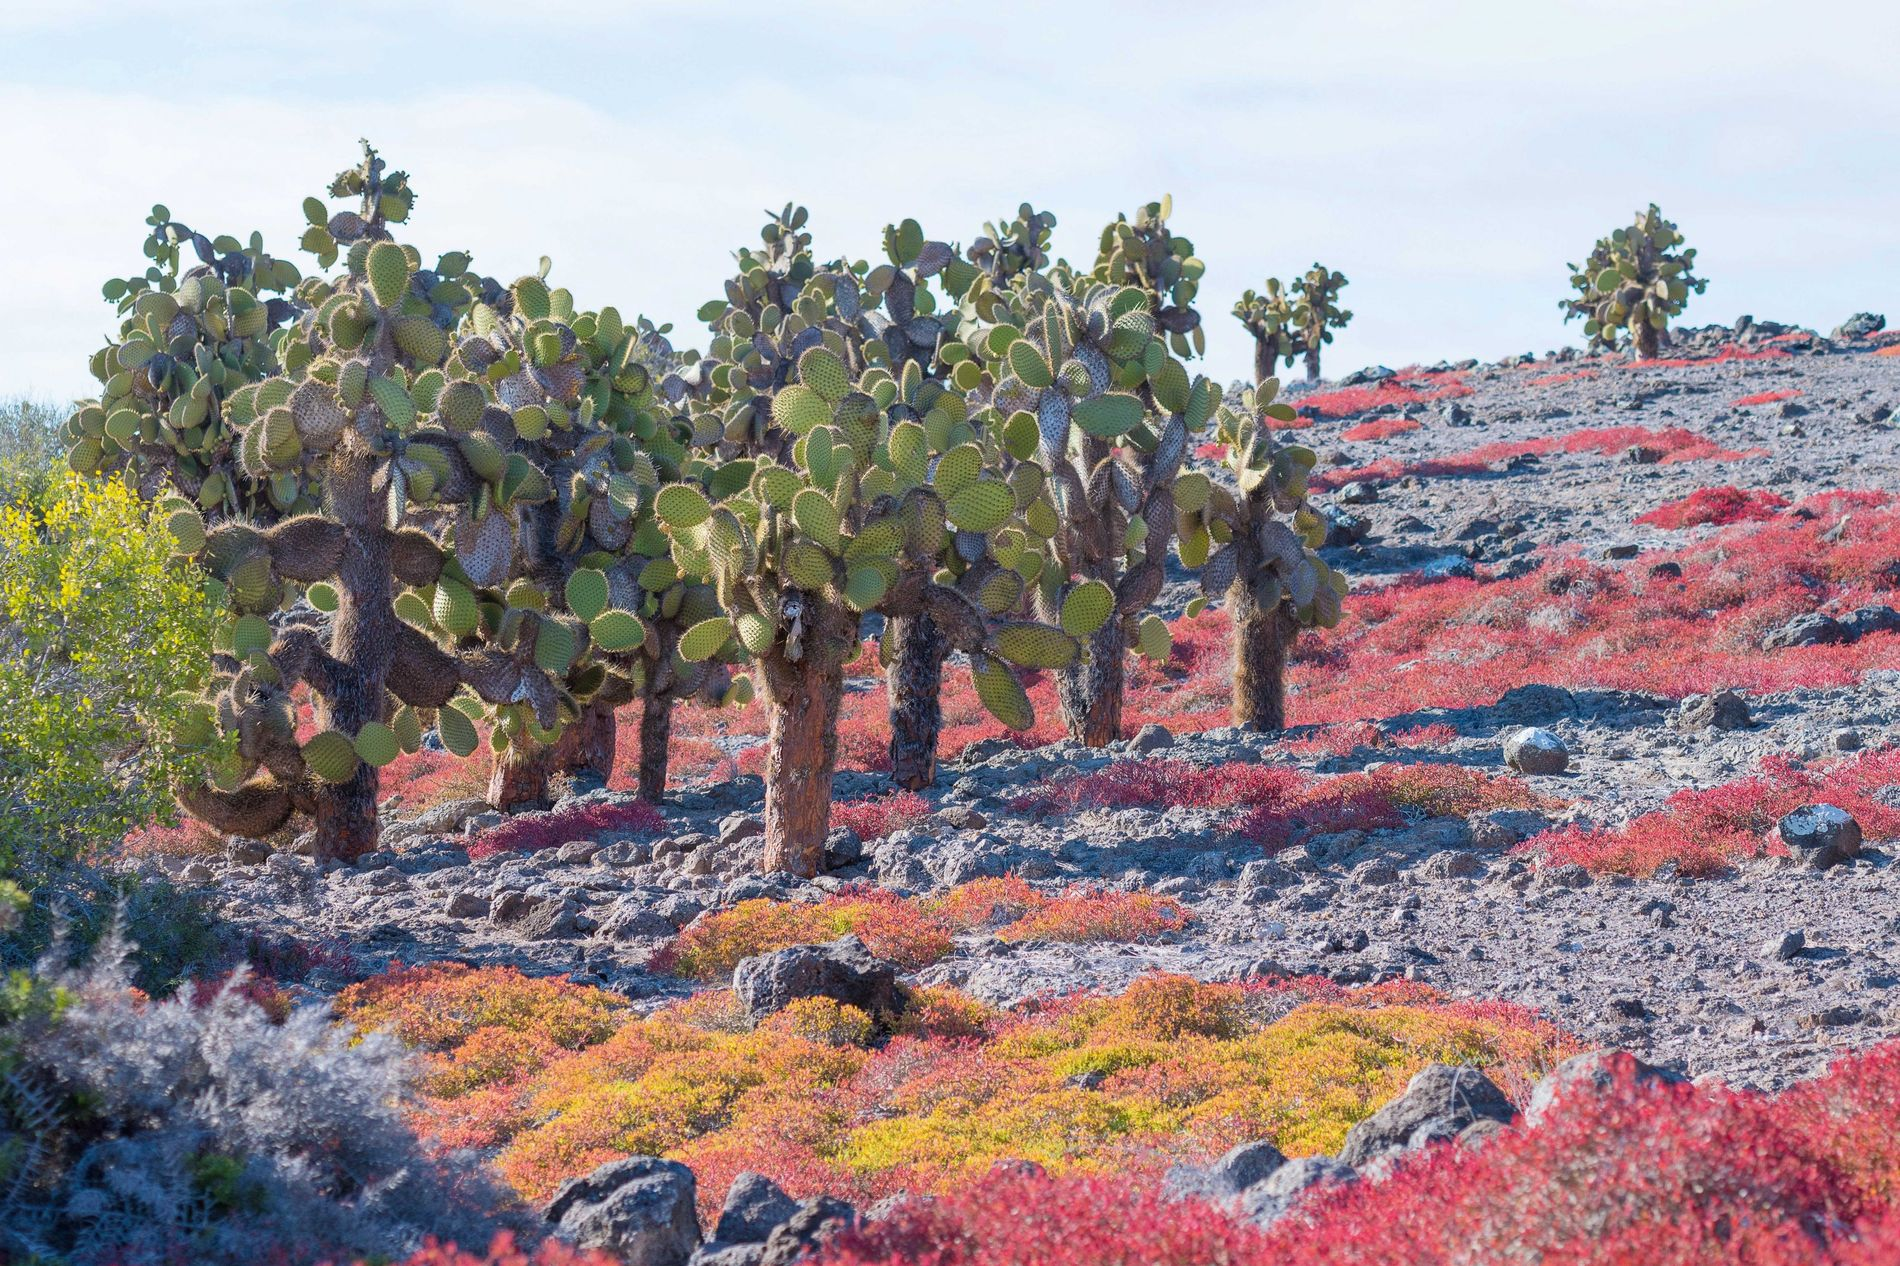 Prickly pear cacti are plentiful on the colourful landscape of the Galápagos.